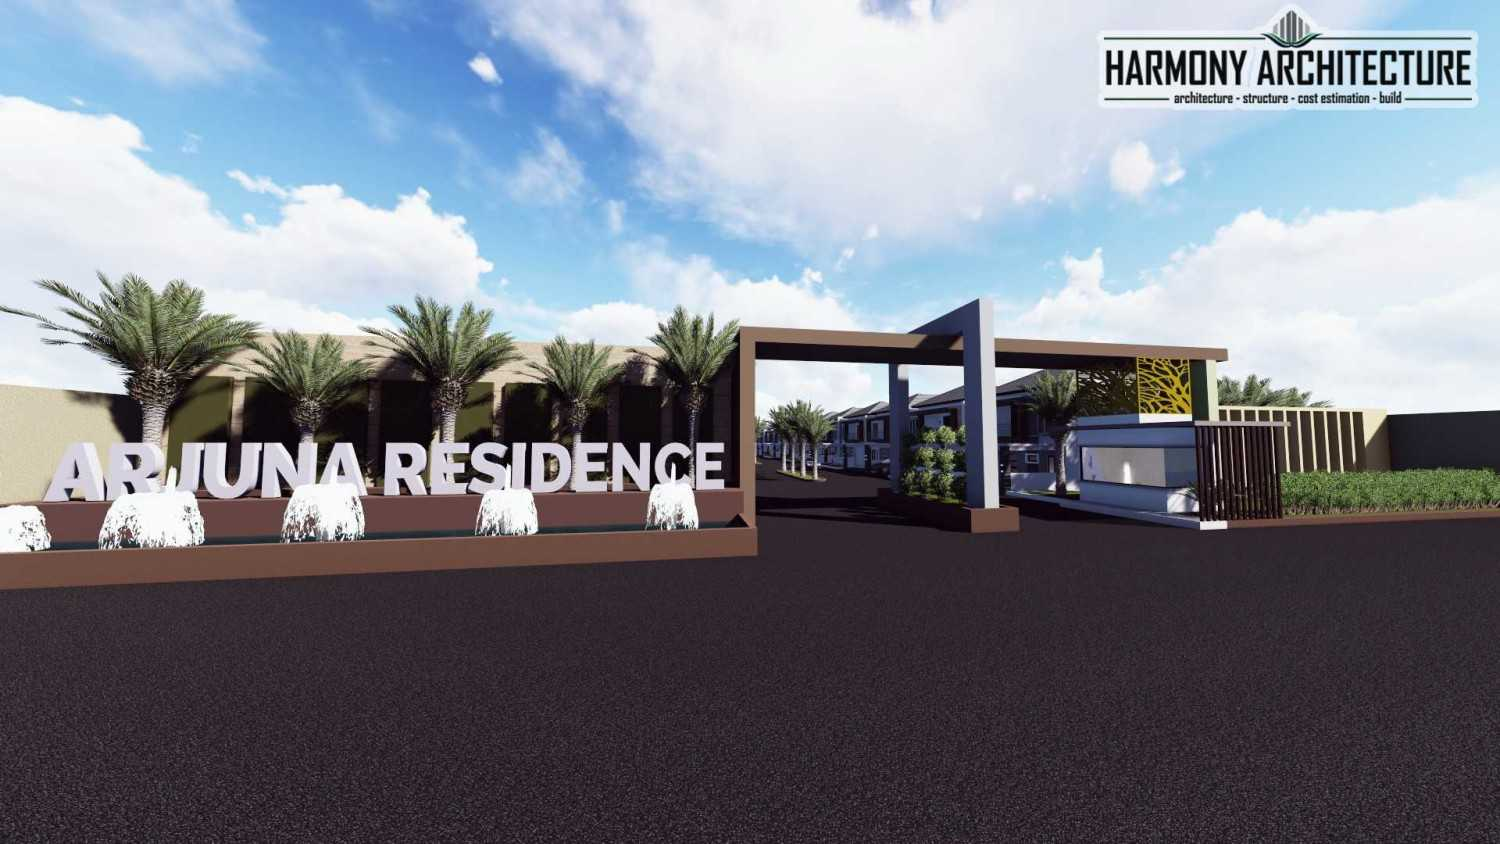 Jasa Design and Build HARMONY ARCHITECTURE di Cilegon